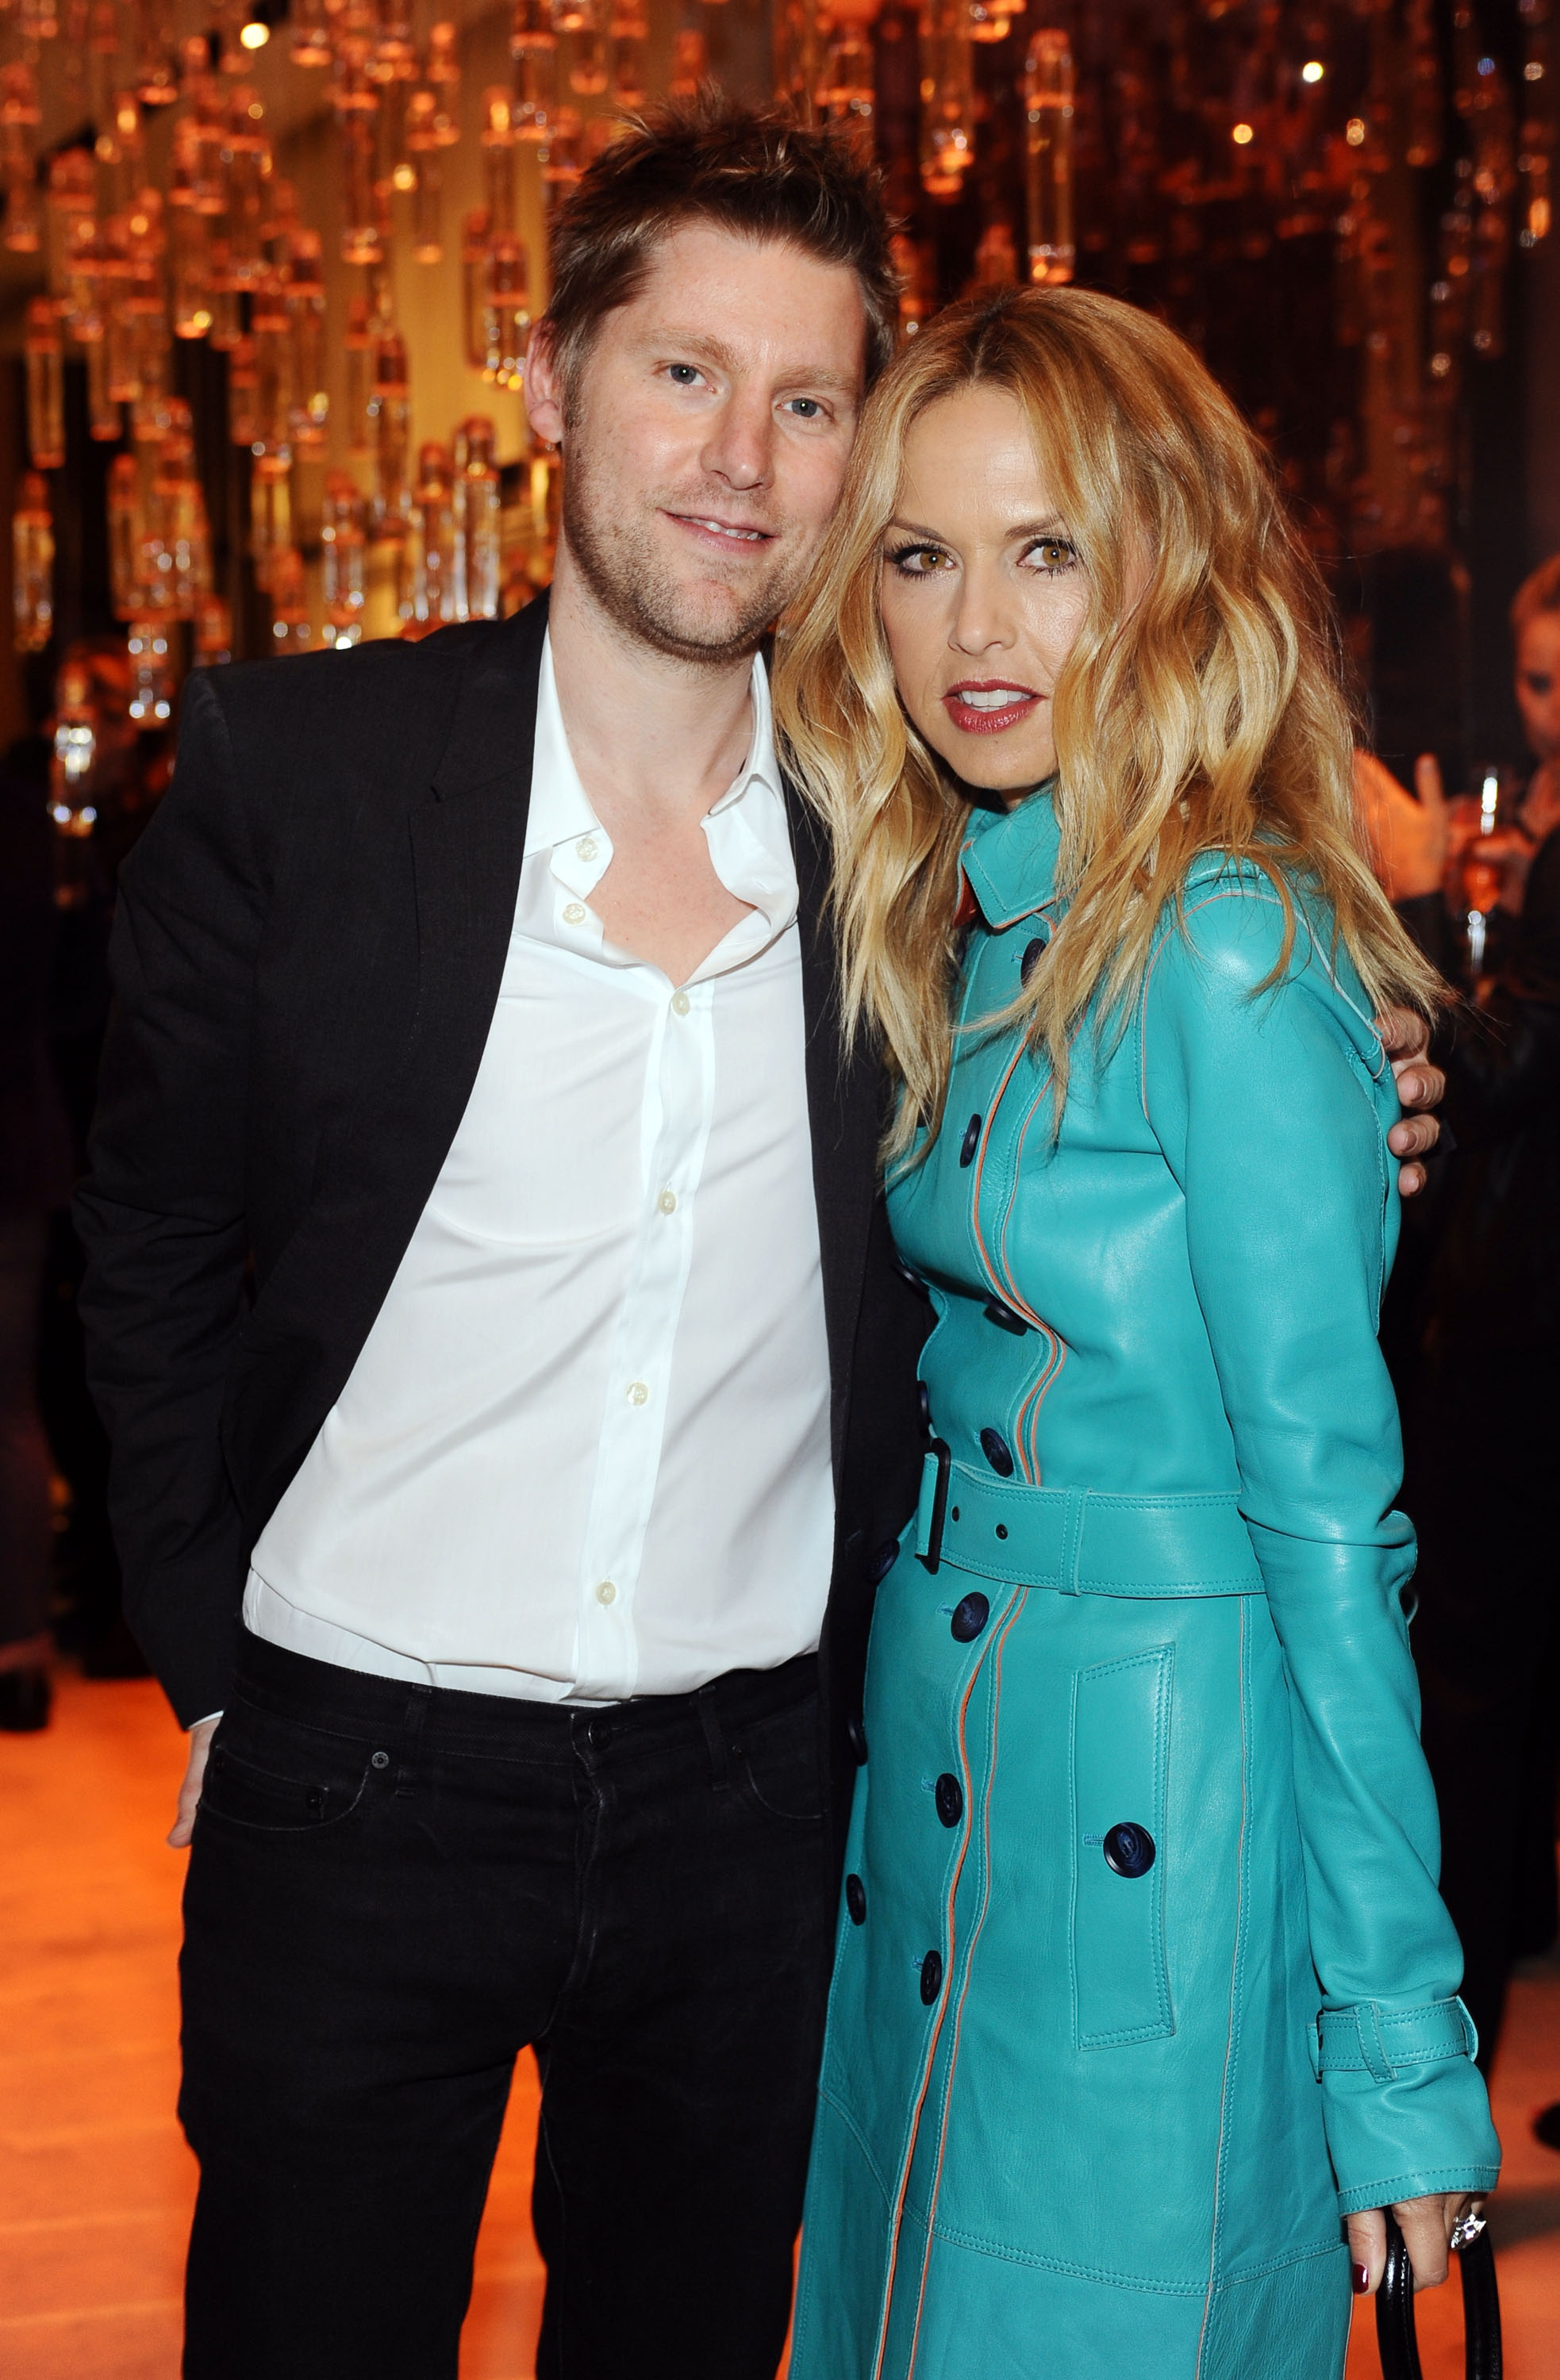 Rachel Zoe in a teal leather trench with Burberry's Christopher Bailey.